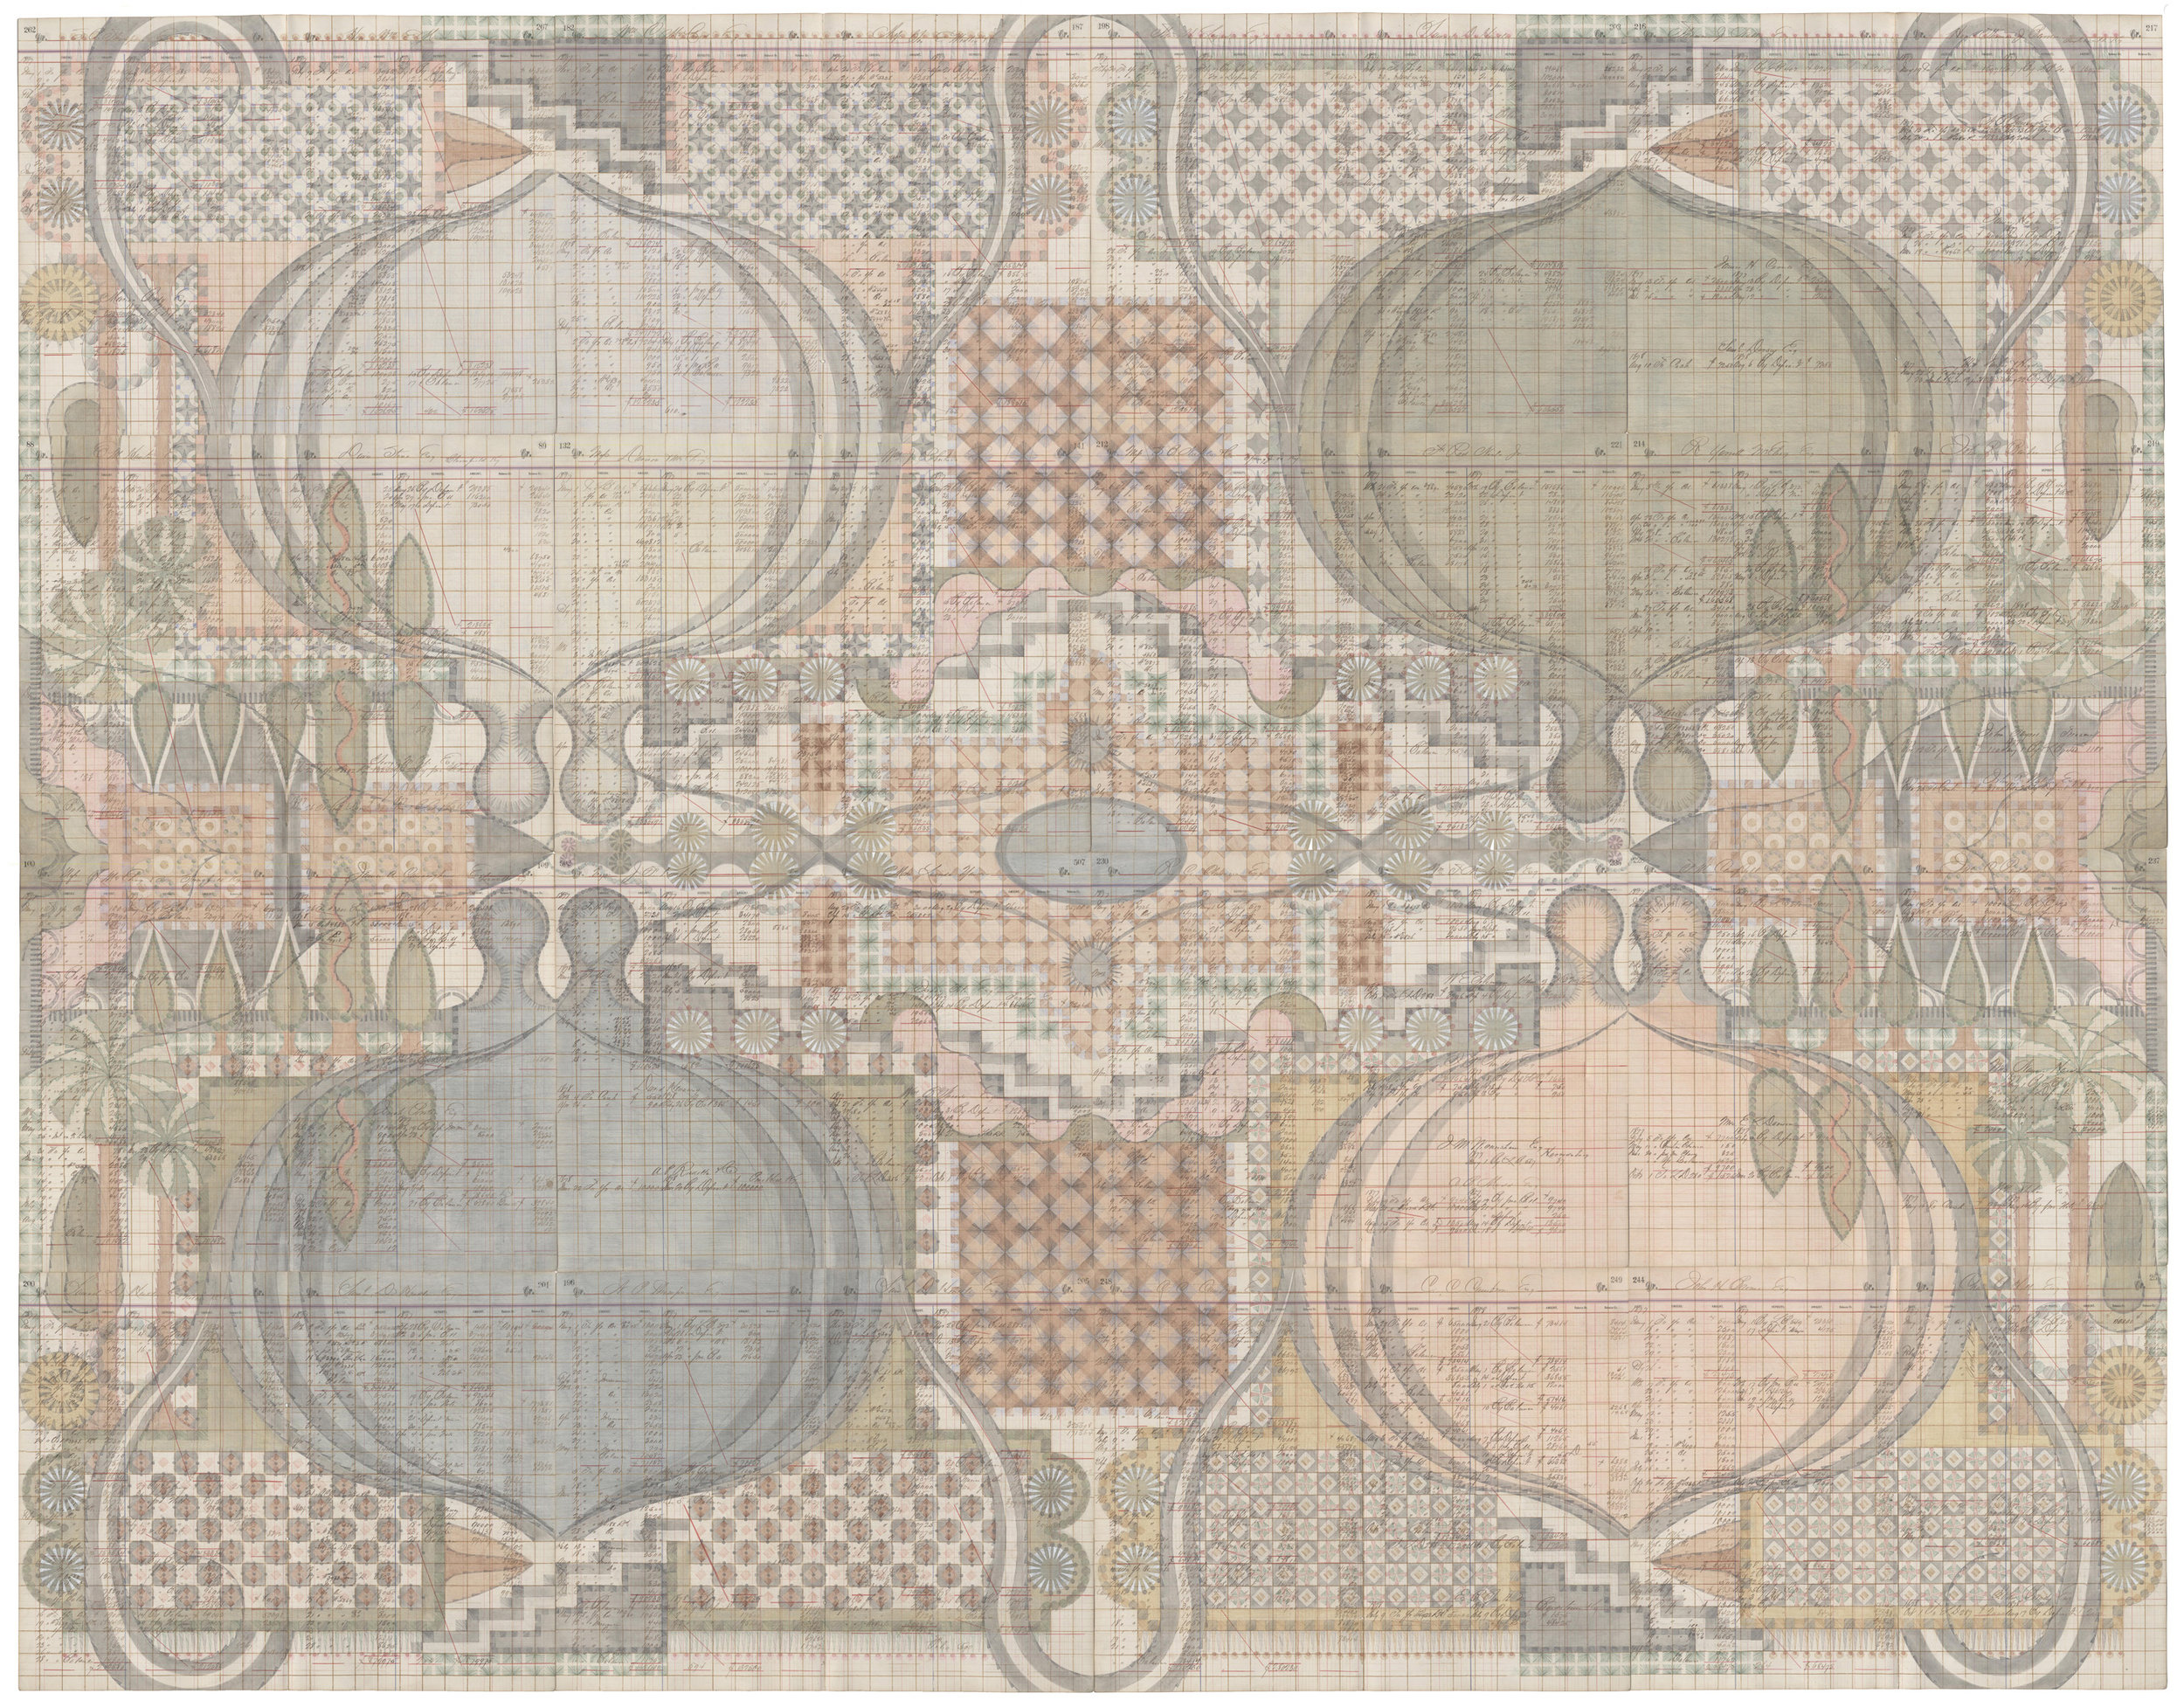 Stepwell Garden, Colored Pencil and Graphite on Antique Ledger Book Pages. 78 x 94.5 inches